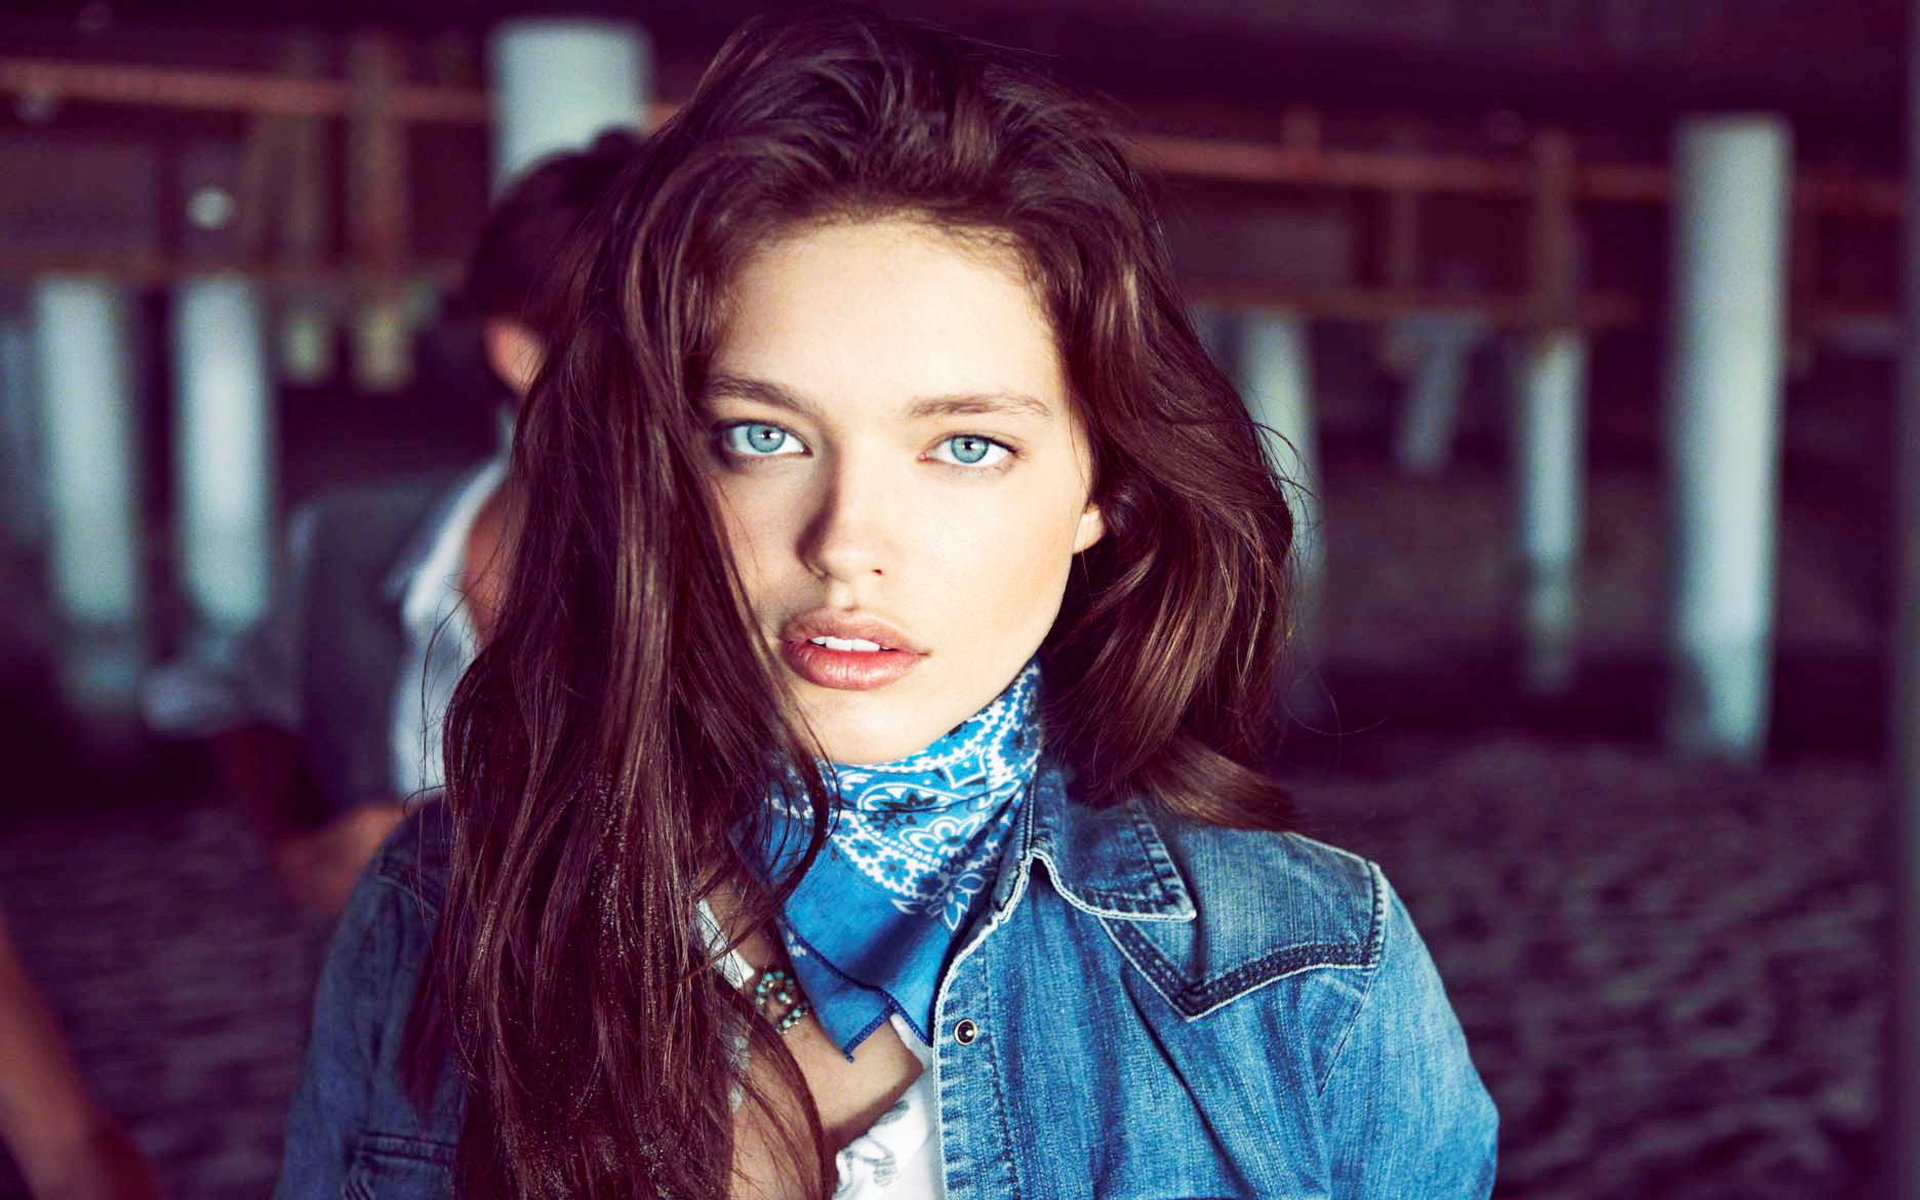 High resolution Emily Didonato hd 1920x1200 background ID:9459 for PC